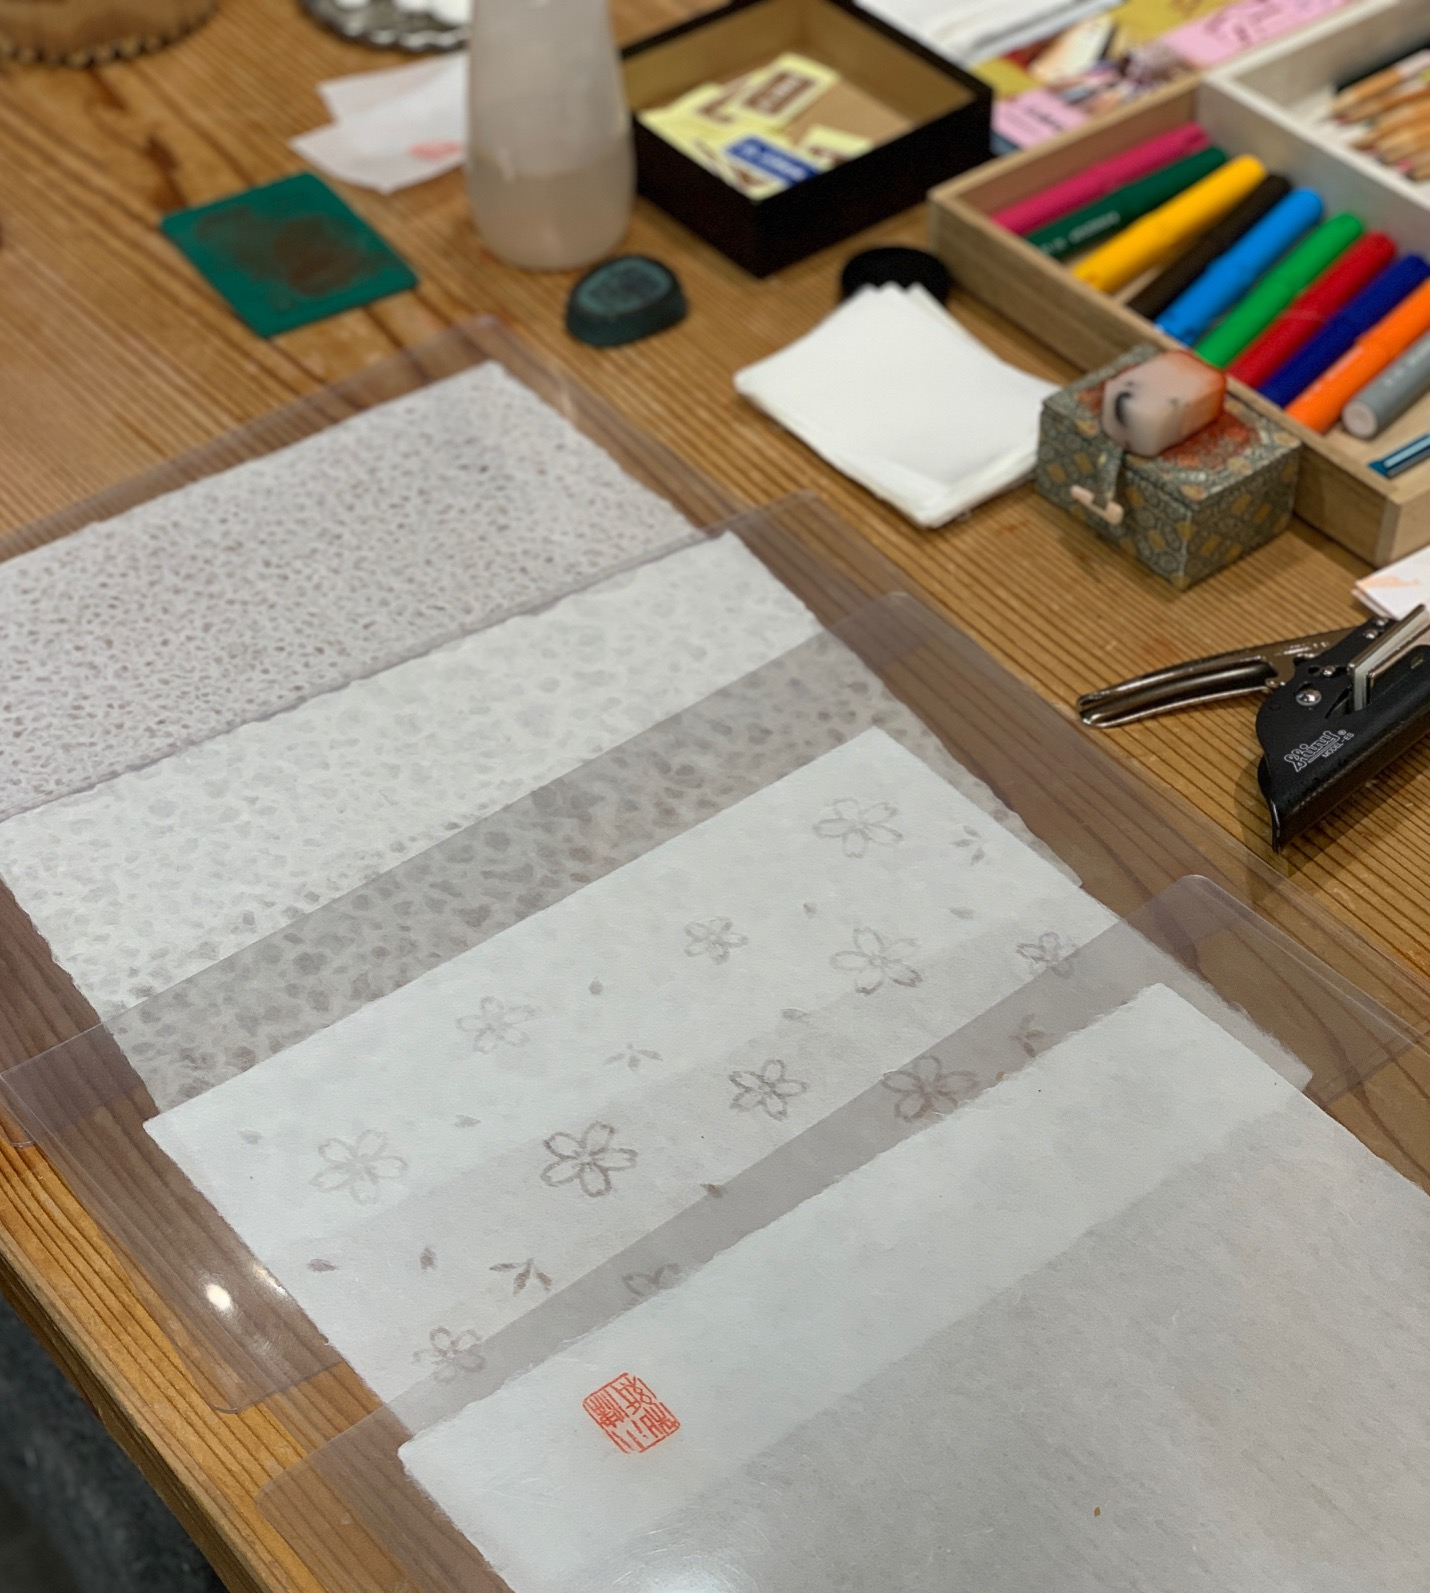 make either a simple plain, Rakusui patterned by putting the paper under a shower or a design paper by using various templates